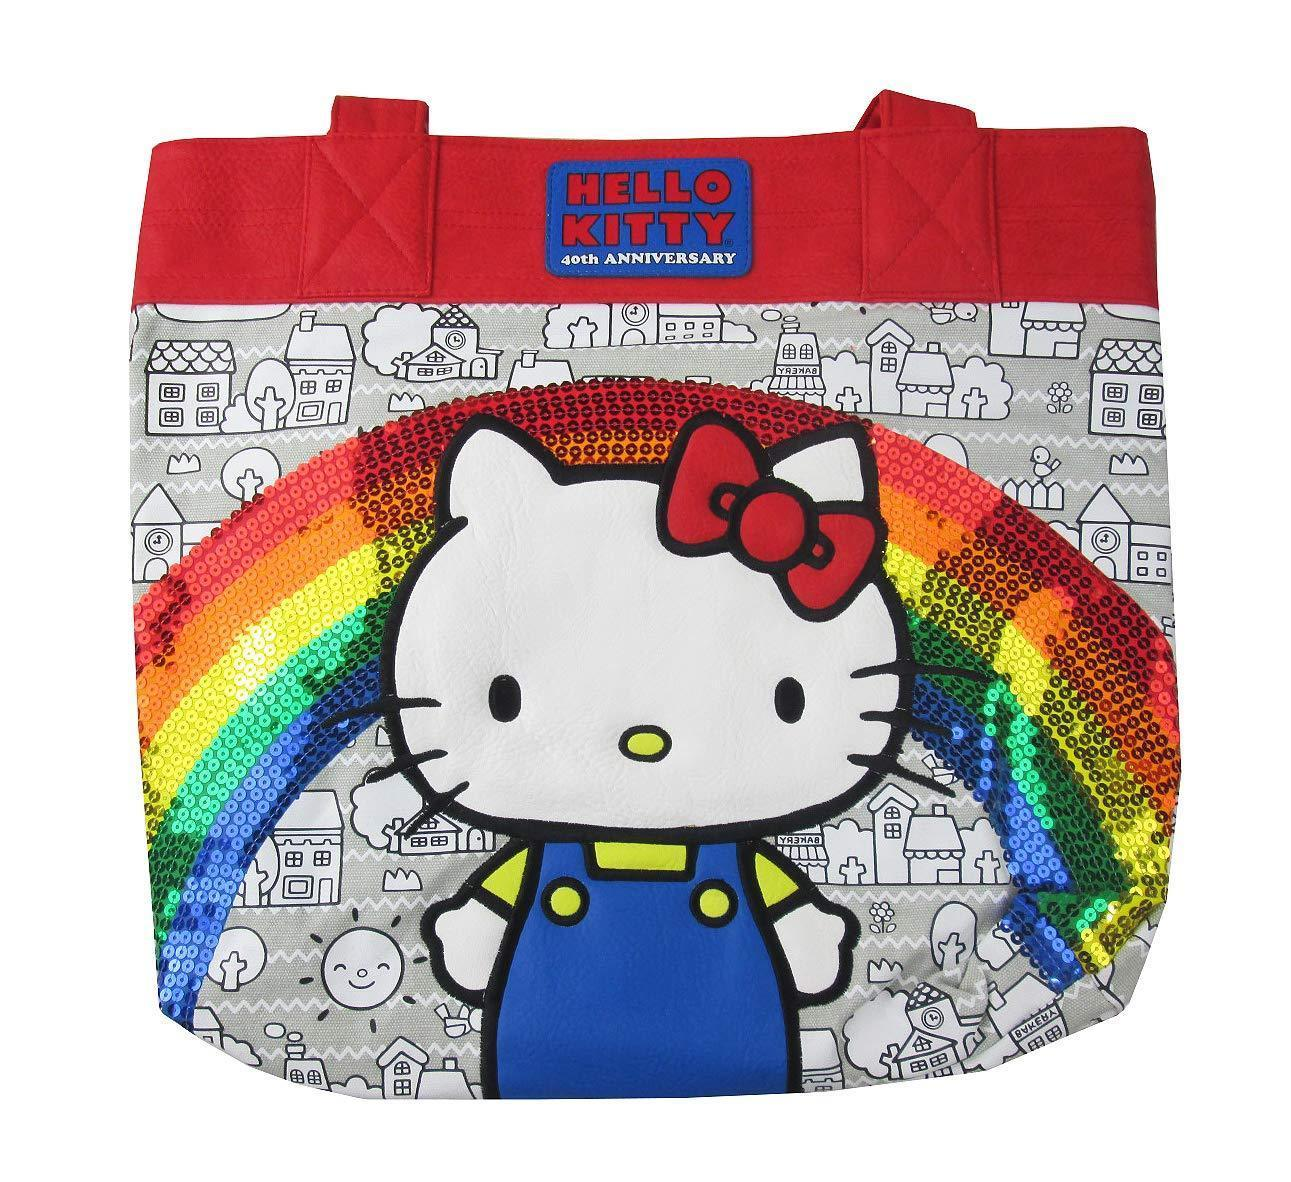 71f6ad694466 Loungefly x Hello Kitty 40th Anniversary and 50 similar items